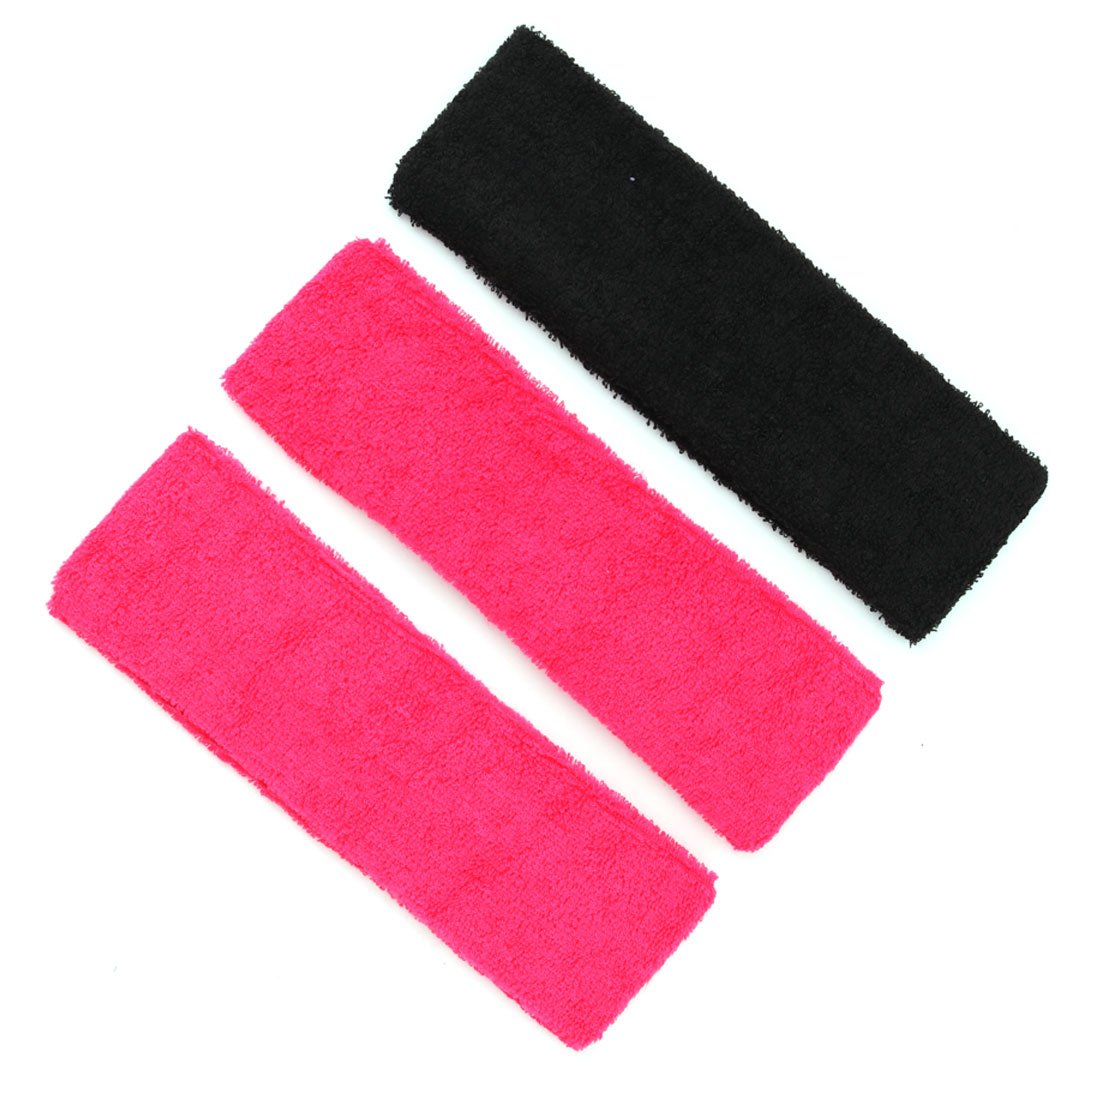 Exercise Yoga Volleyball Running Elastic Healthcare Sweatband HeadBand 3 PCS